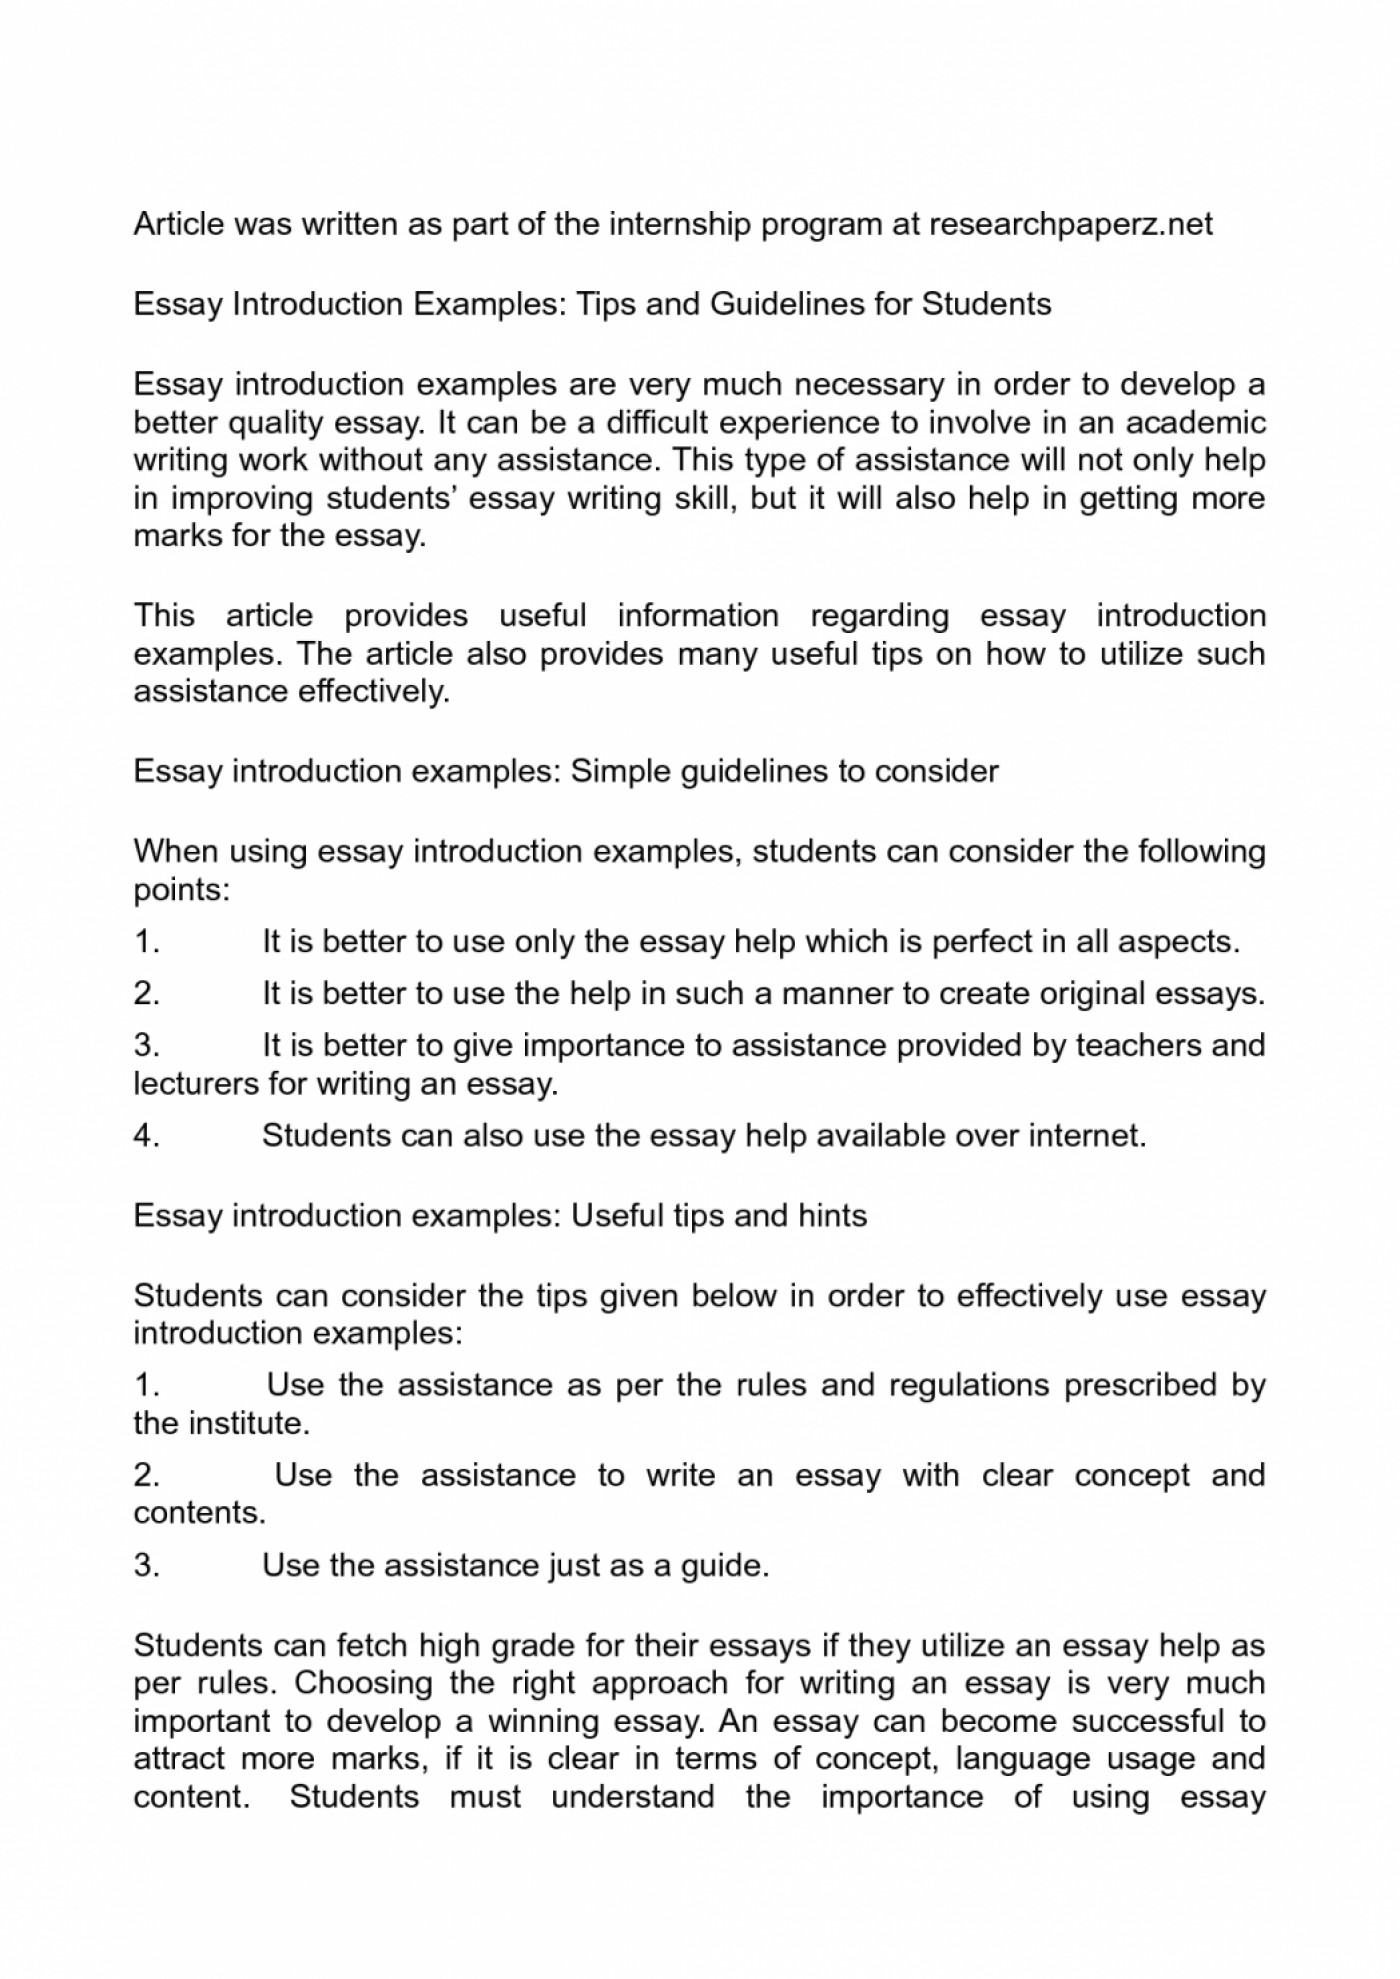 007 Essay Example How To Start Introduction On Good Paragraph An Eyx5t Write University For In Ielts Academic Analytical Argumentative Hook Examples Great Intro 1048x1482 Awesome A Sentence College 1400